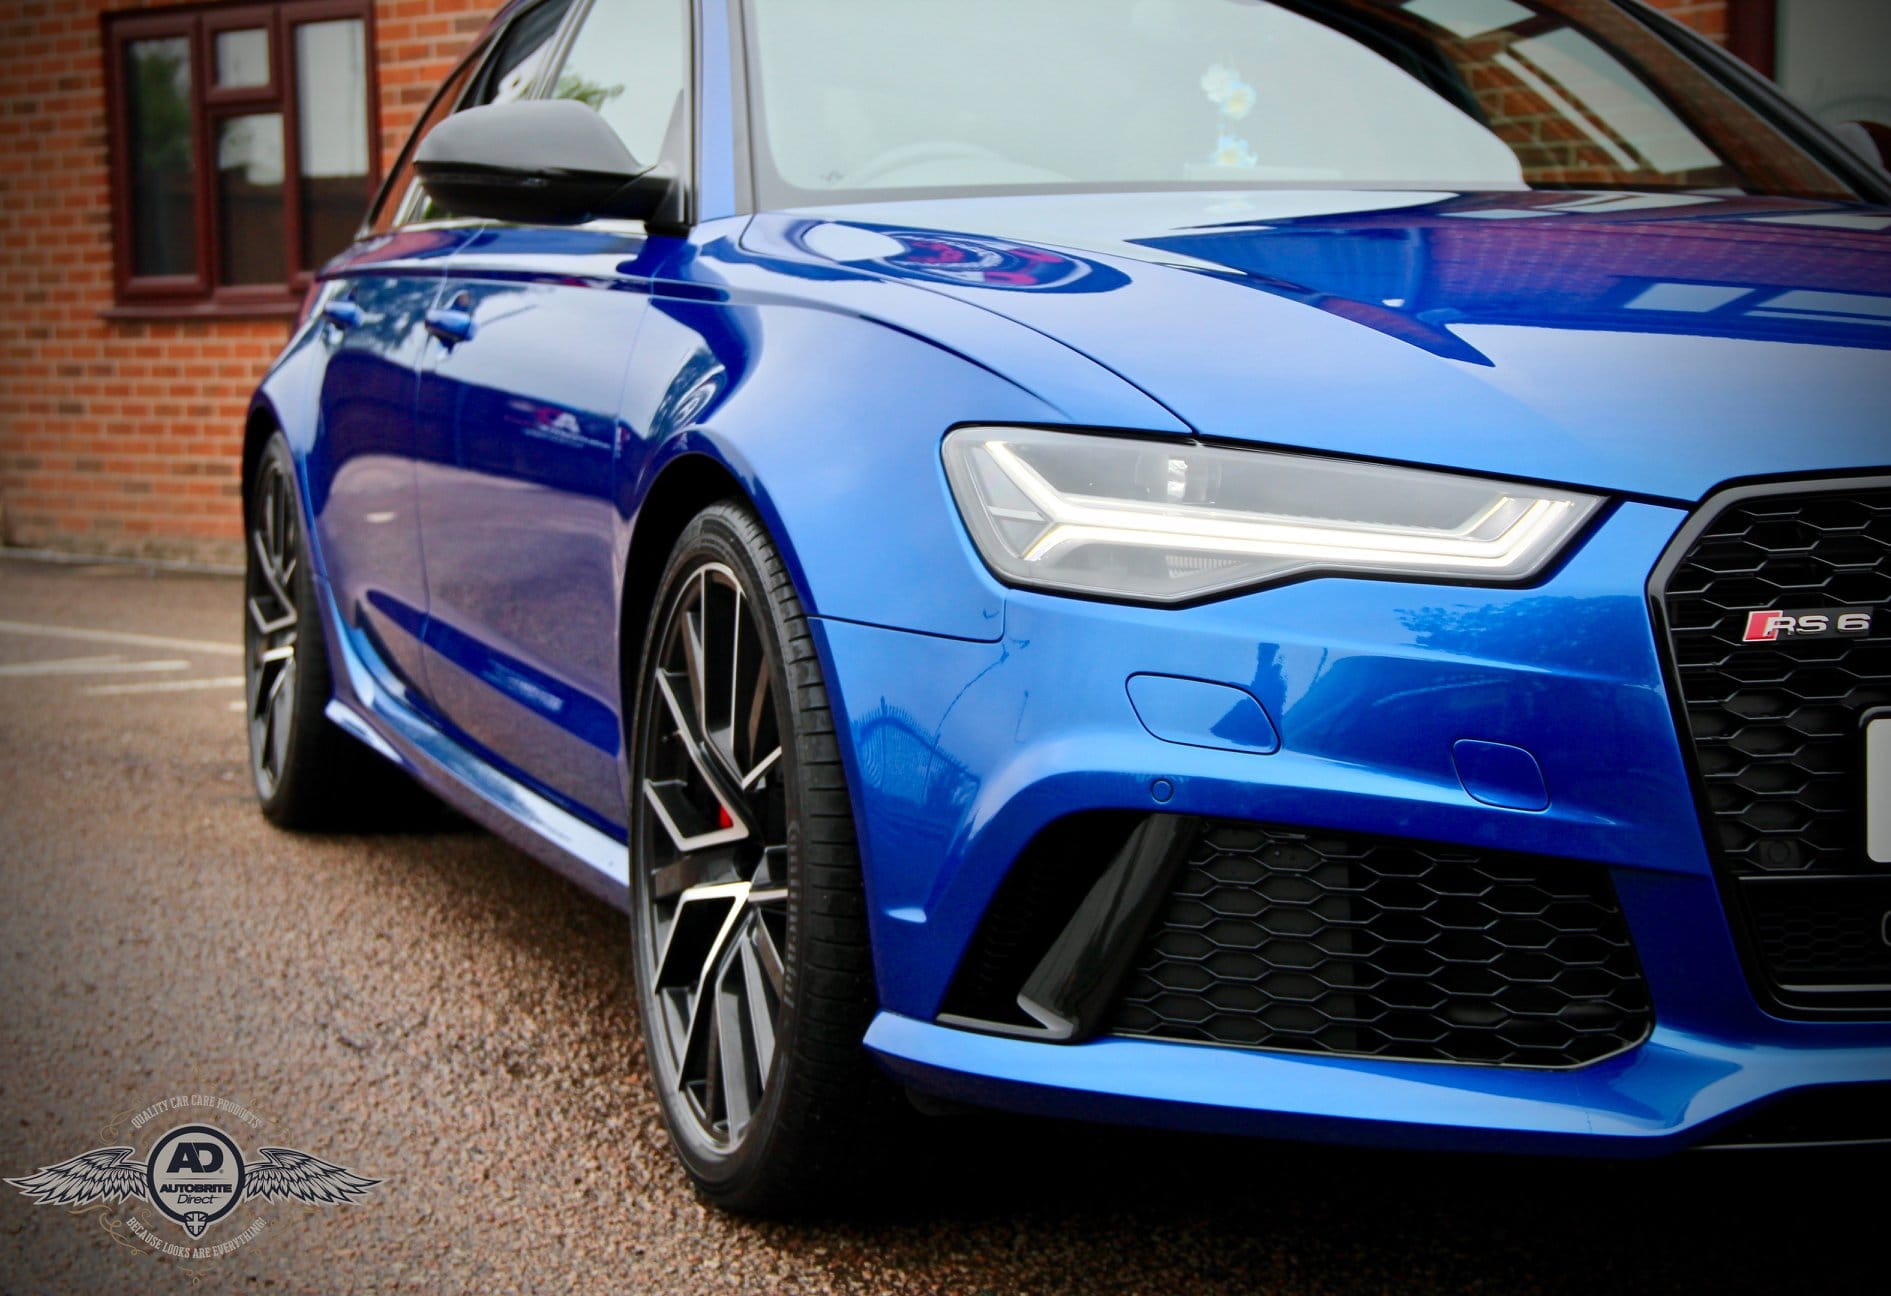 RS6 front